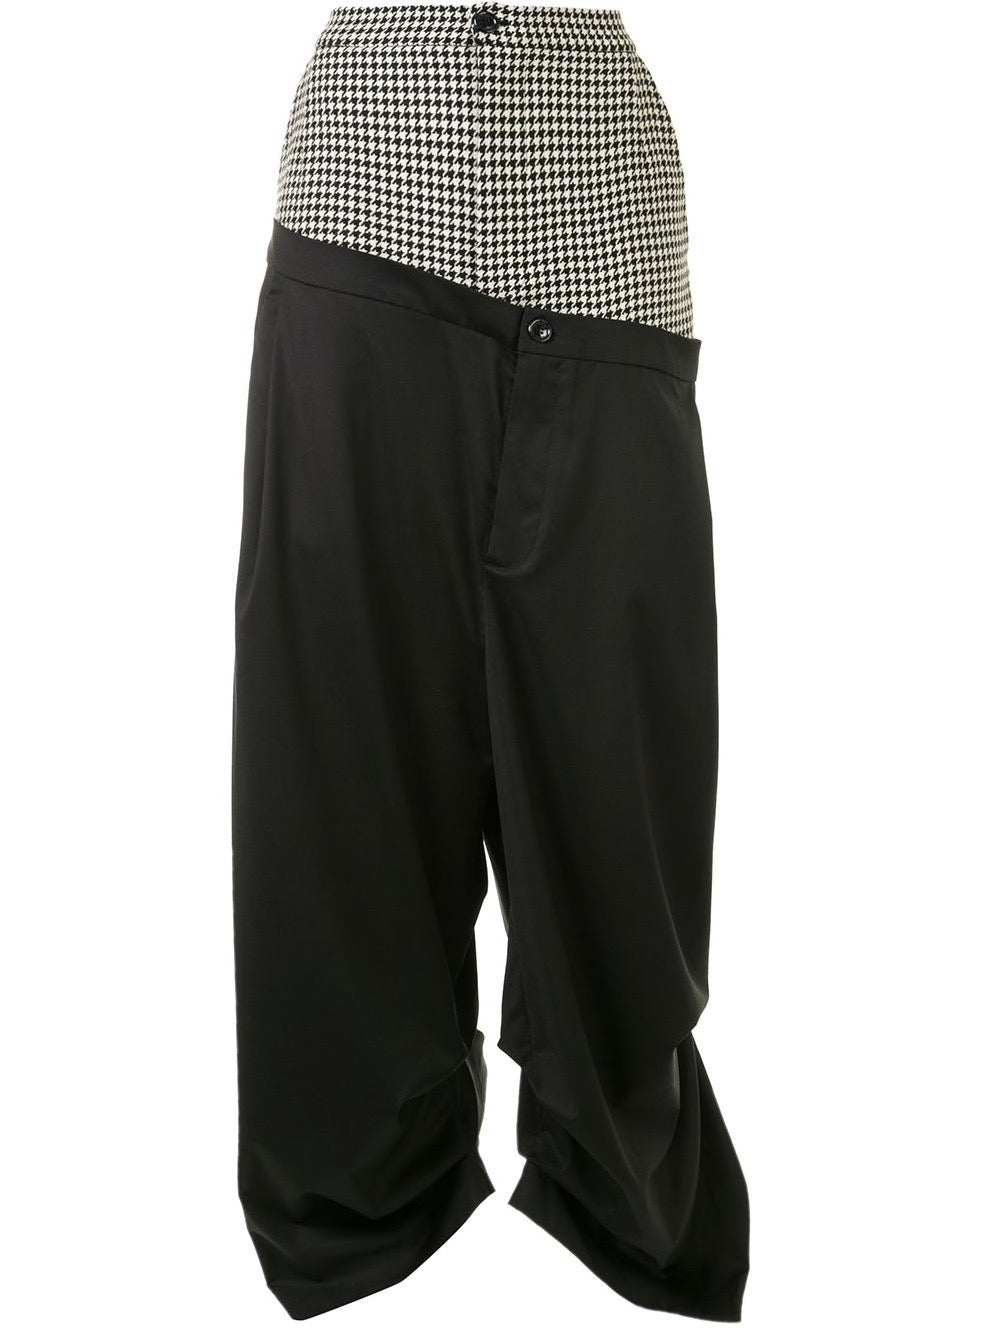 Houndstooth/Black Double Trouser